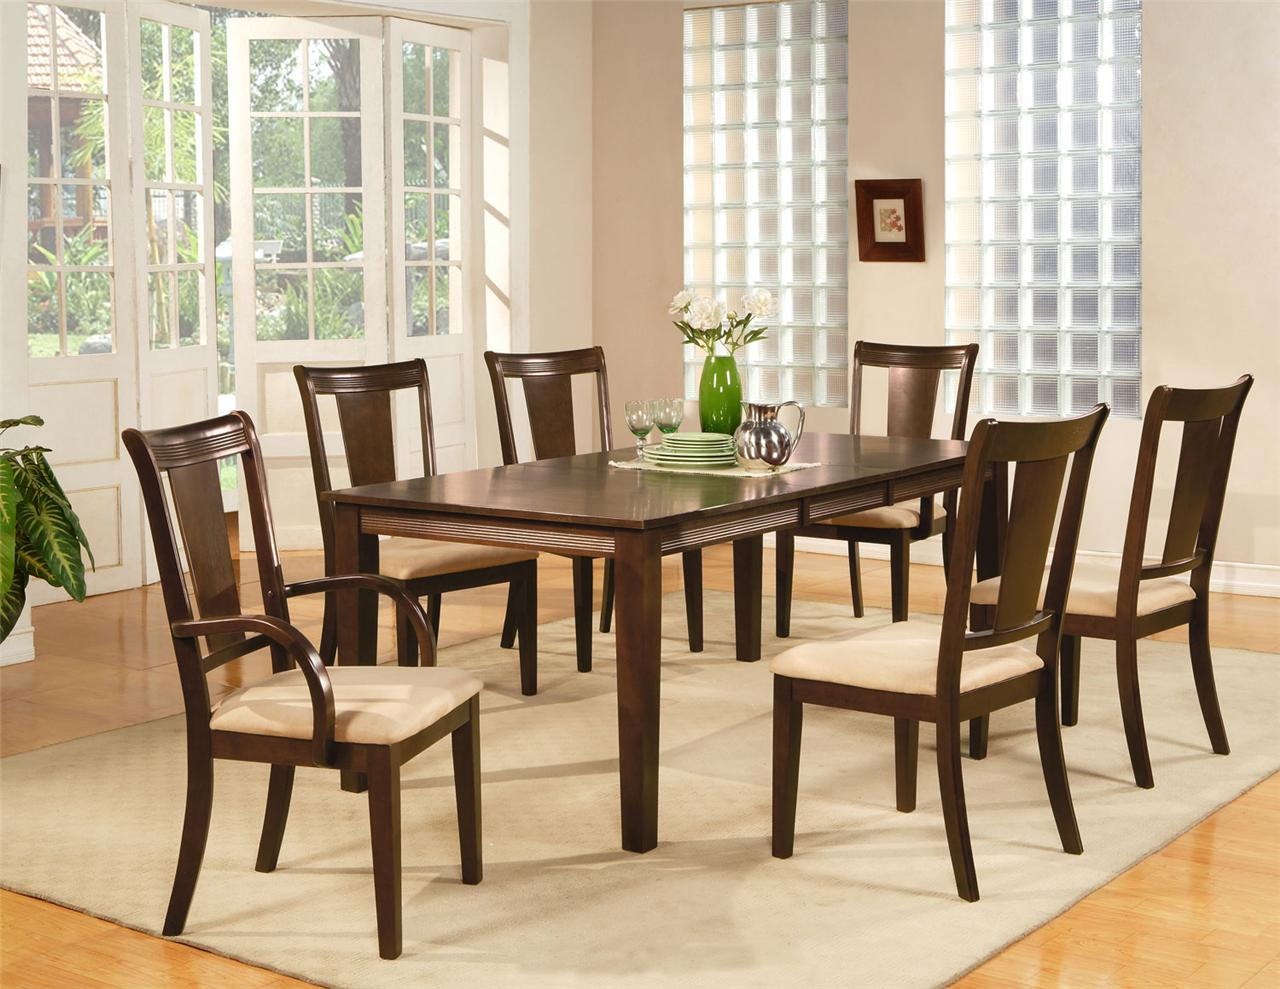 8 chair square dining table mini beach photo frame 9pc rectangular room set and chairs ebay